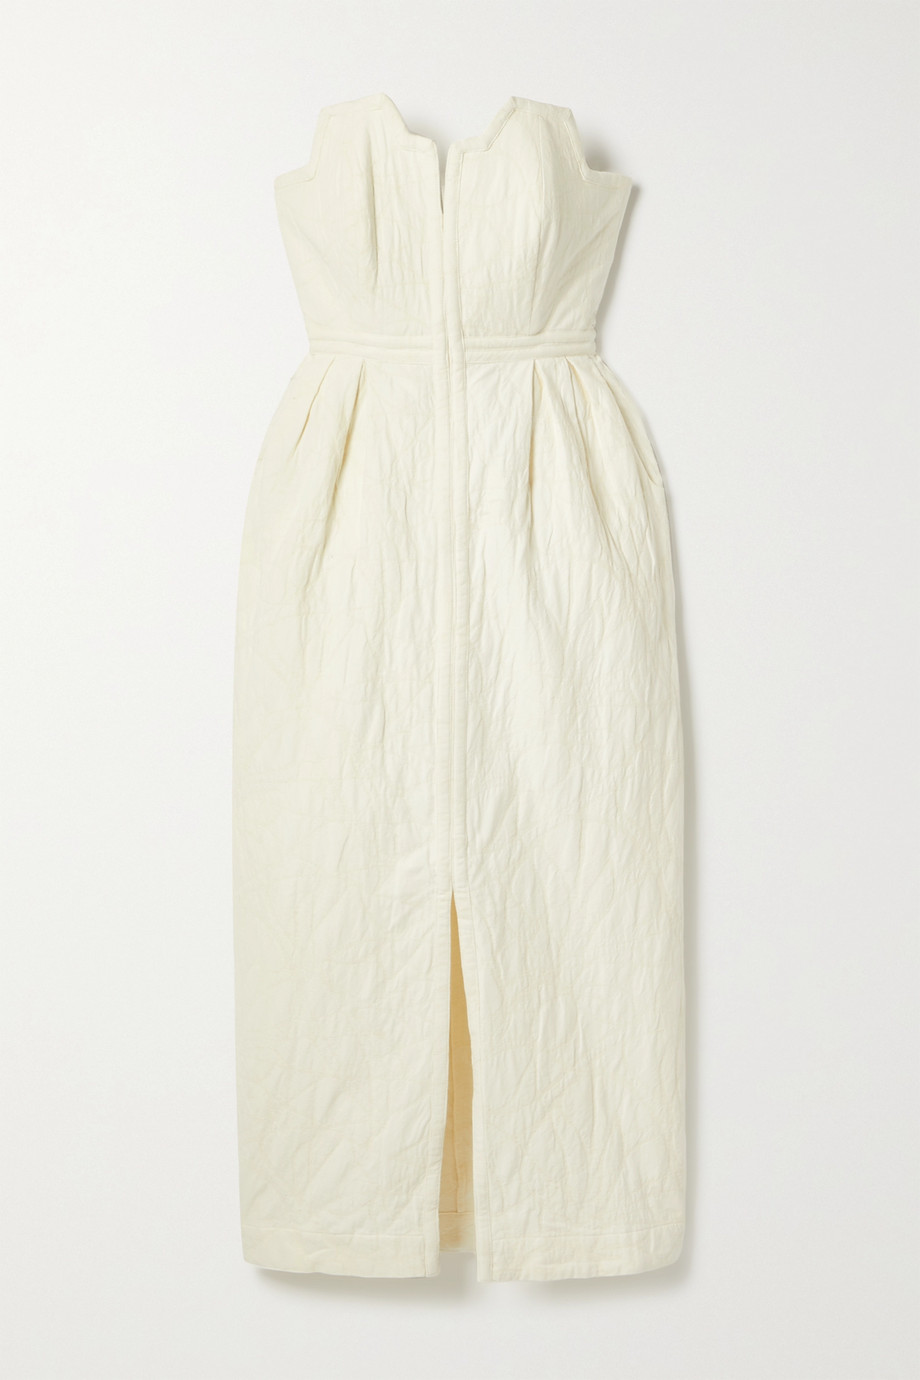 Mara Hoffman + NET SUSTAIN Aurelia strapless organic cotton and linen-blend jacquard midi dress